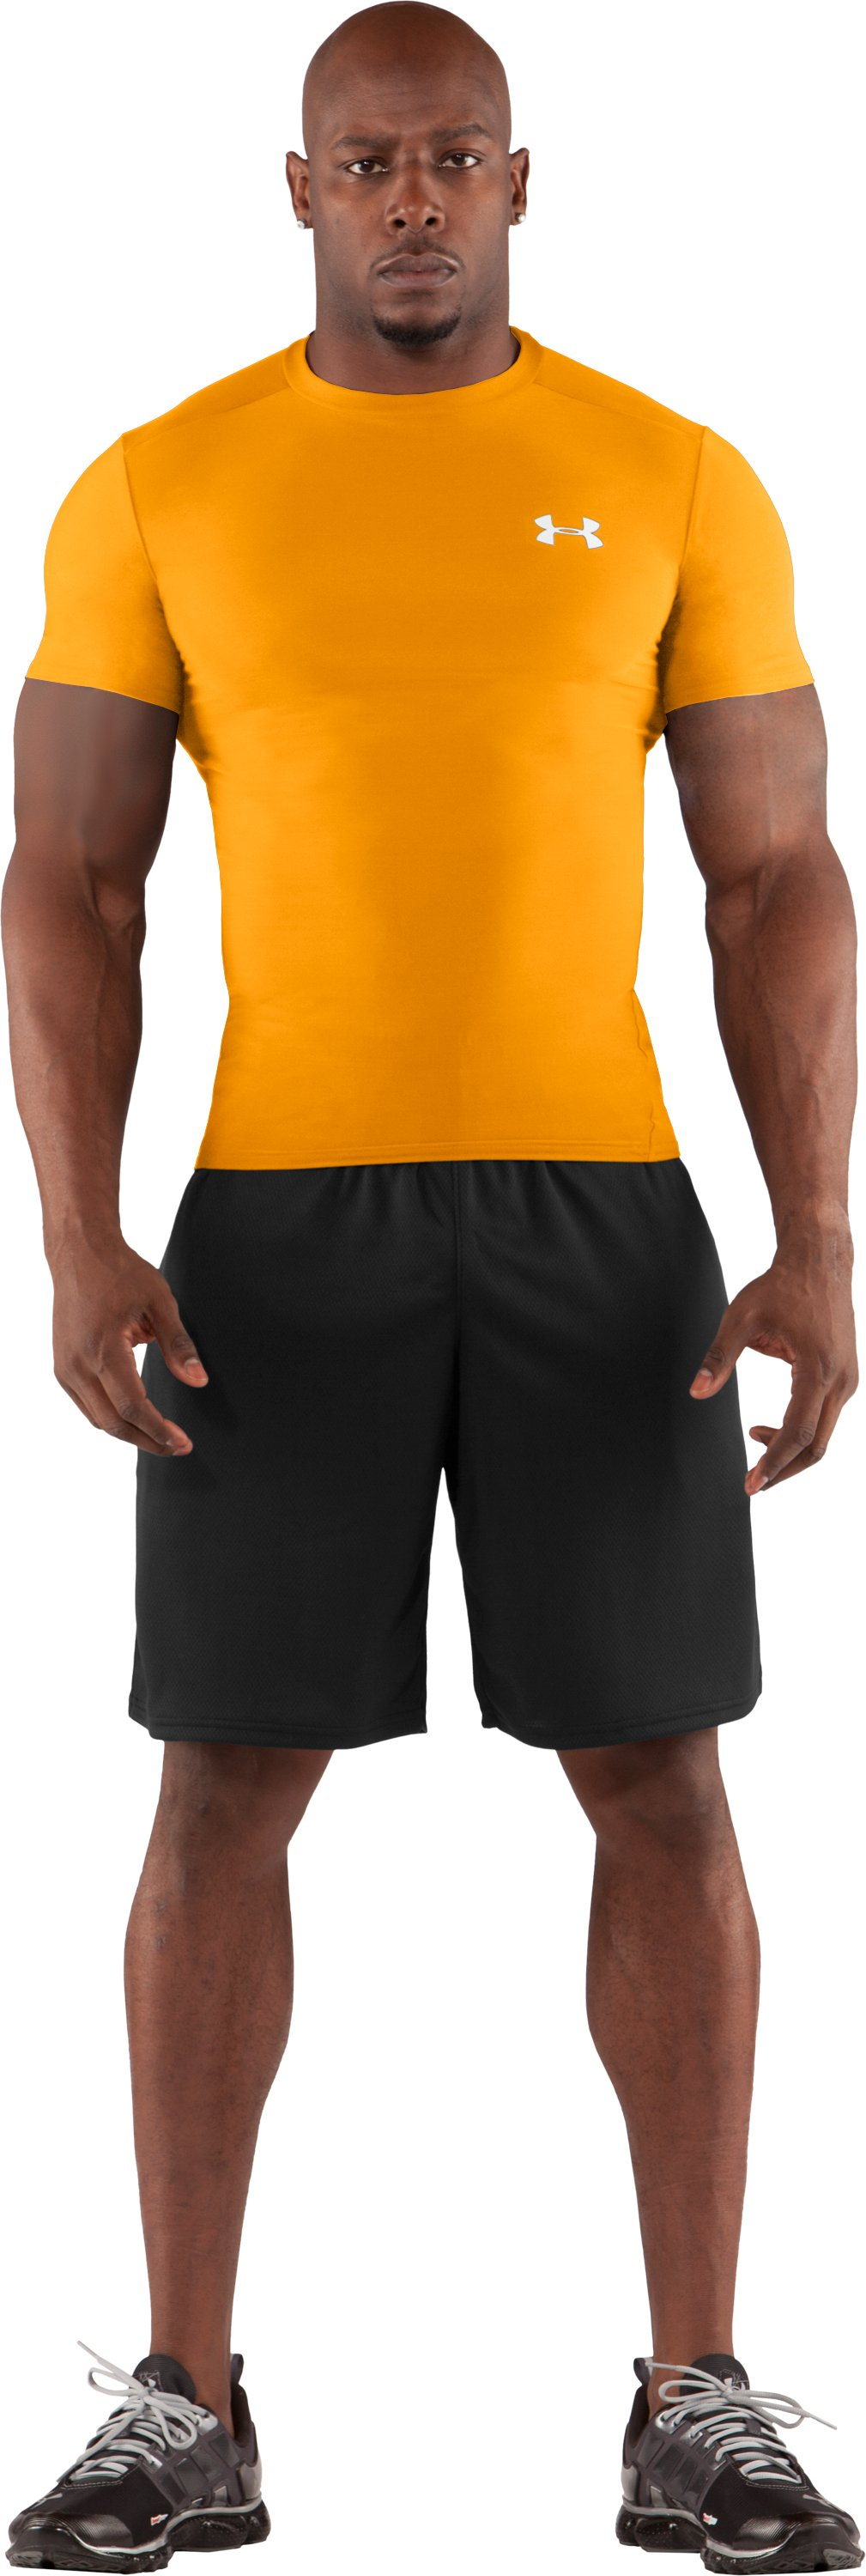 Men's HeatGear® Compression Short Sleeve T-Shirt, Steeltown Gold, zoomed image